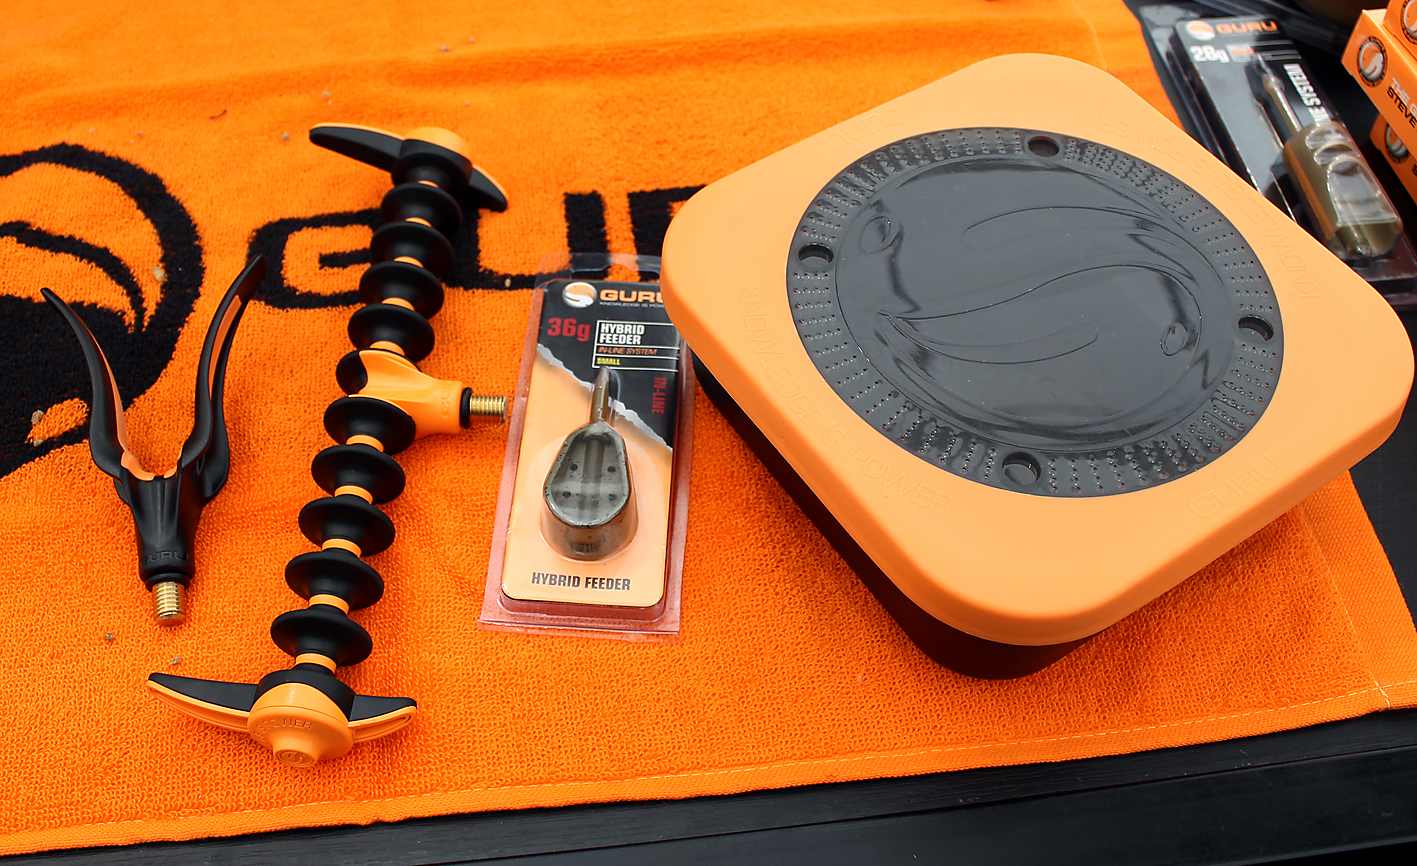 From rod rests to feeders to baitboxes, all new products from Guru due out this May